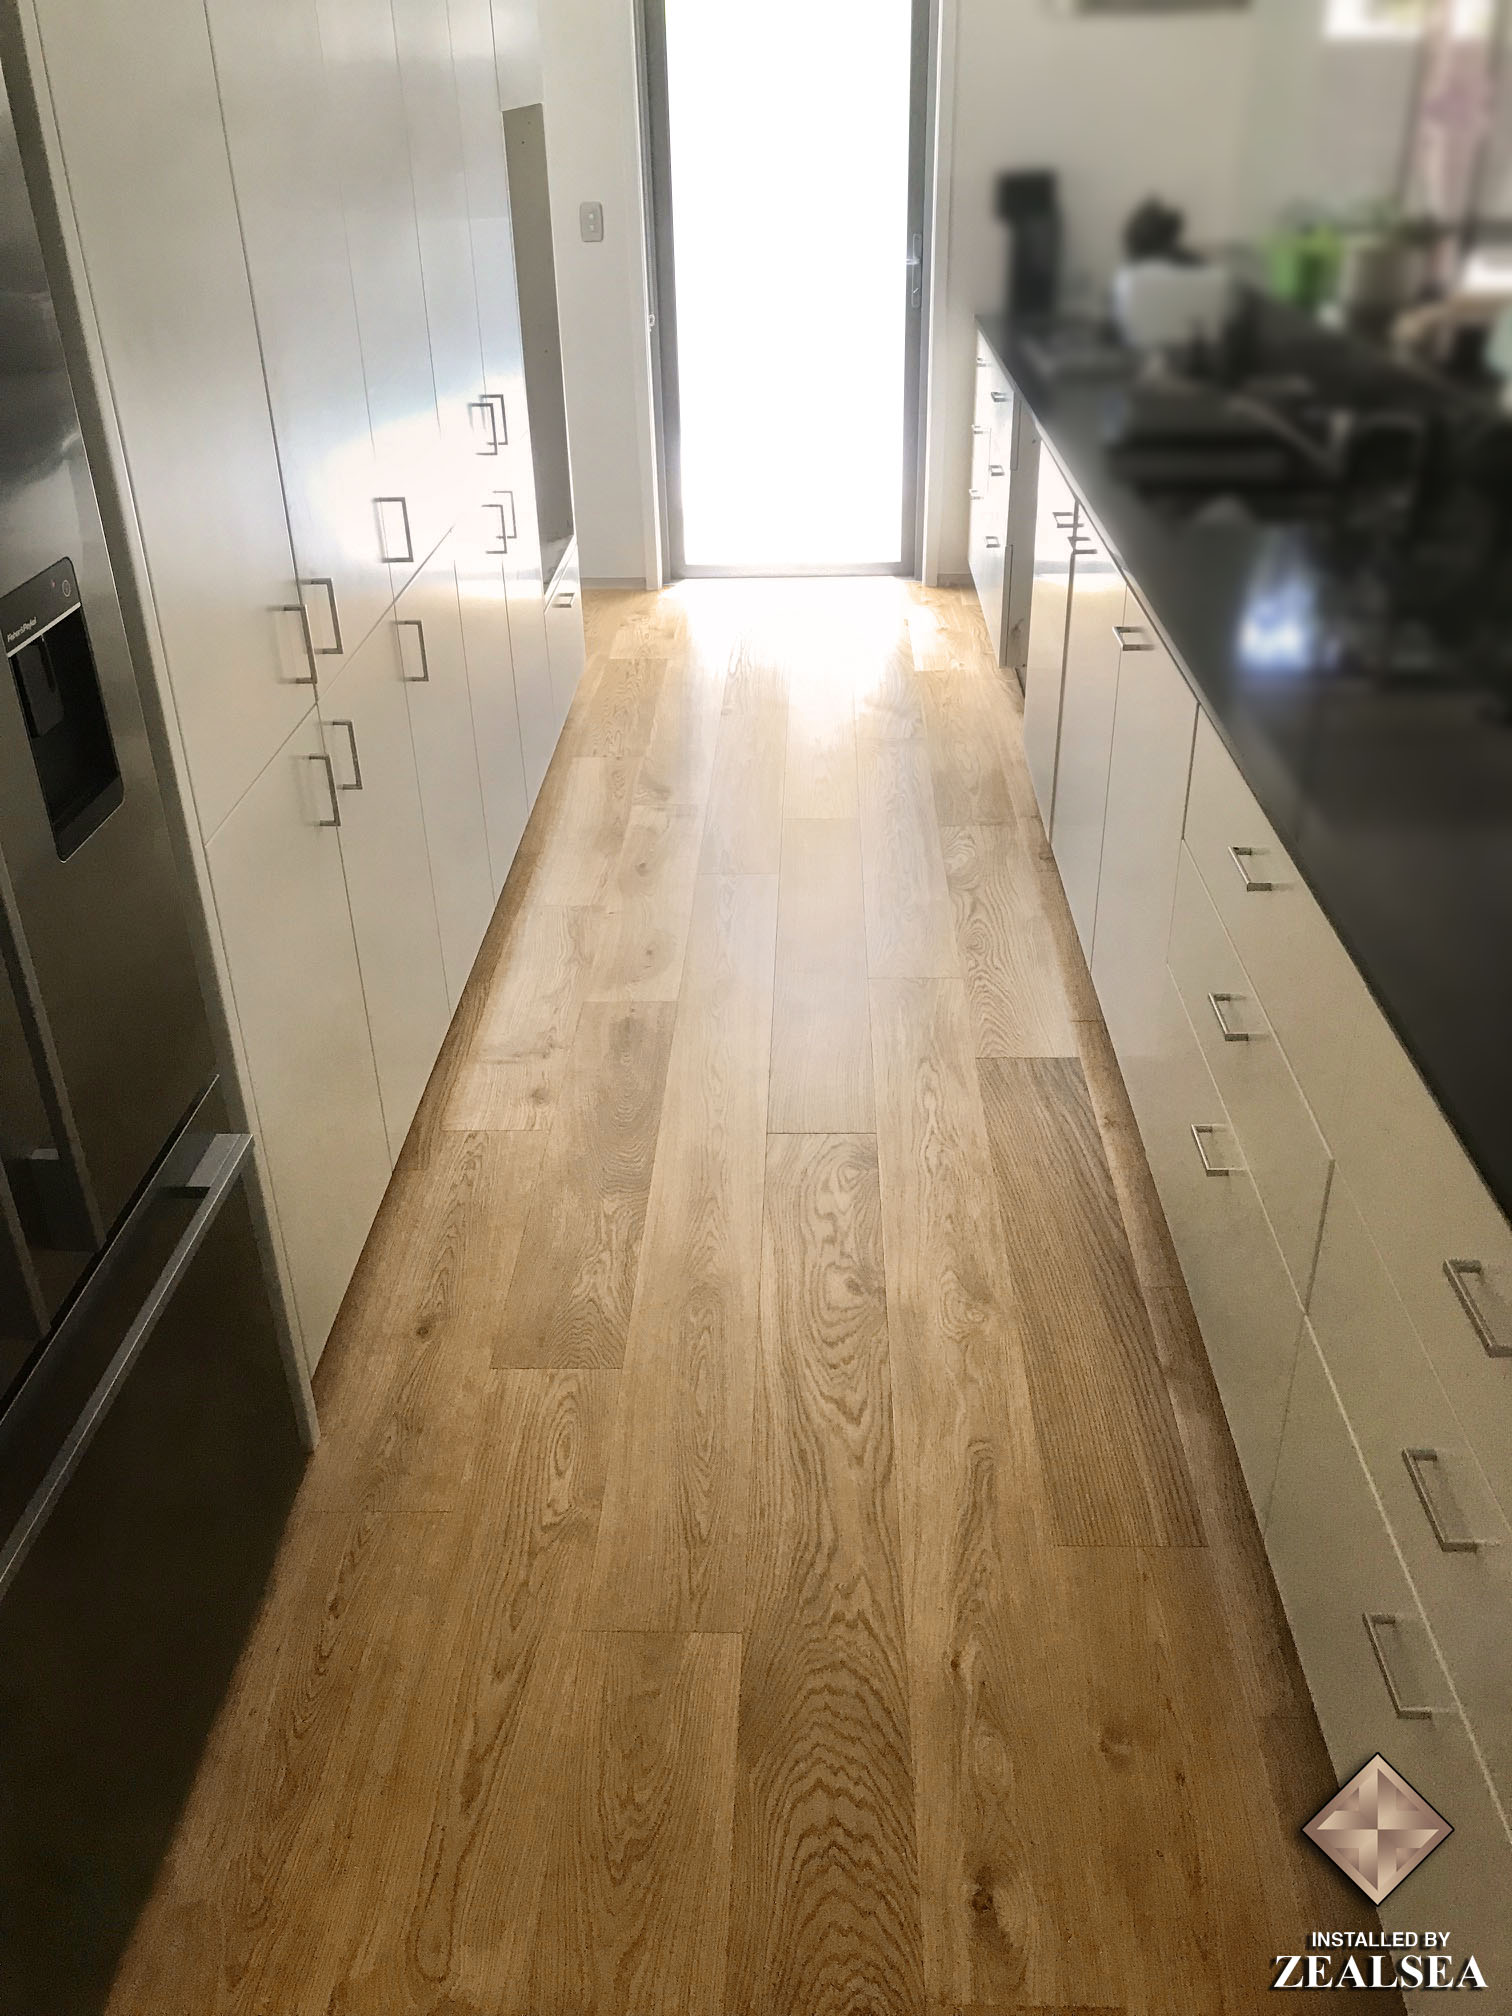 zealsea timber flooring professional installation new farm coswick natural 5